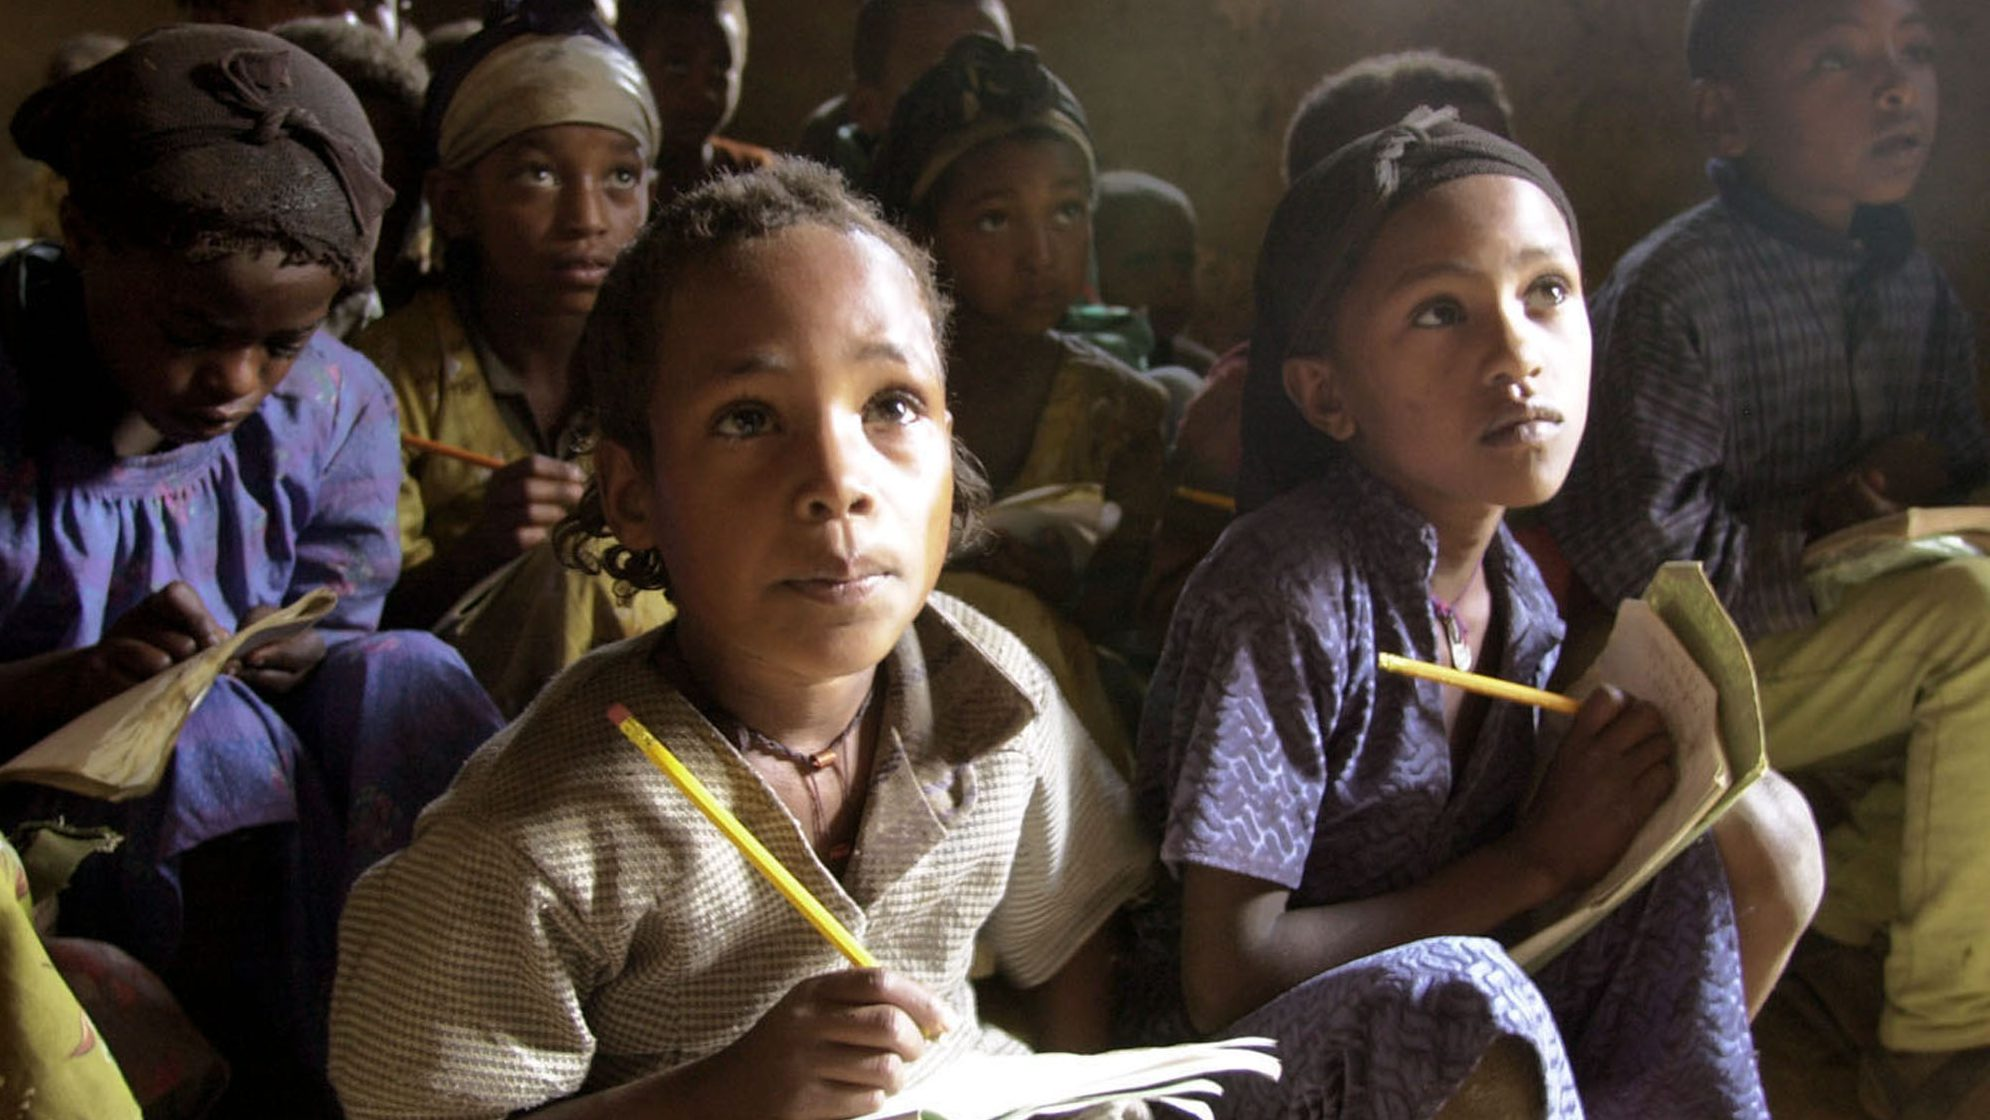 Ethiopia's education system is both remarkable and in crisis